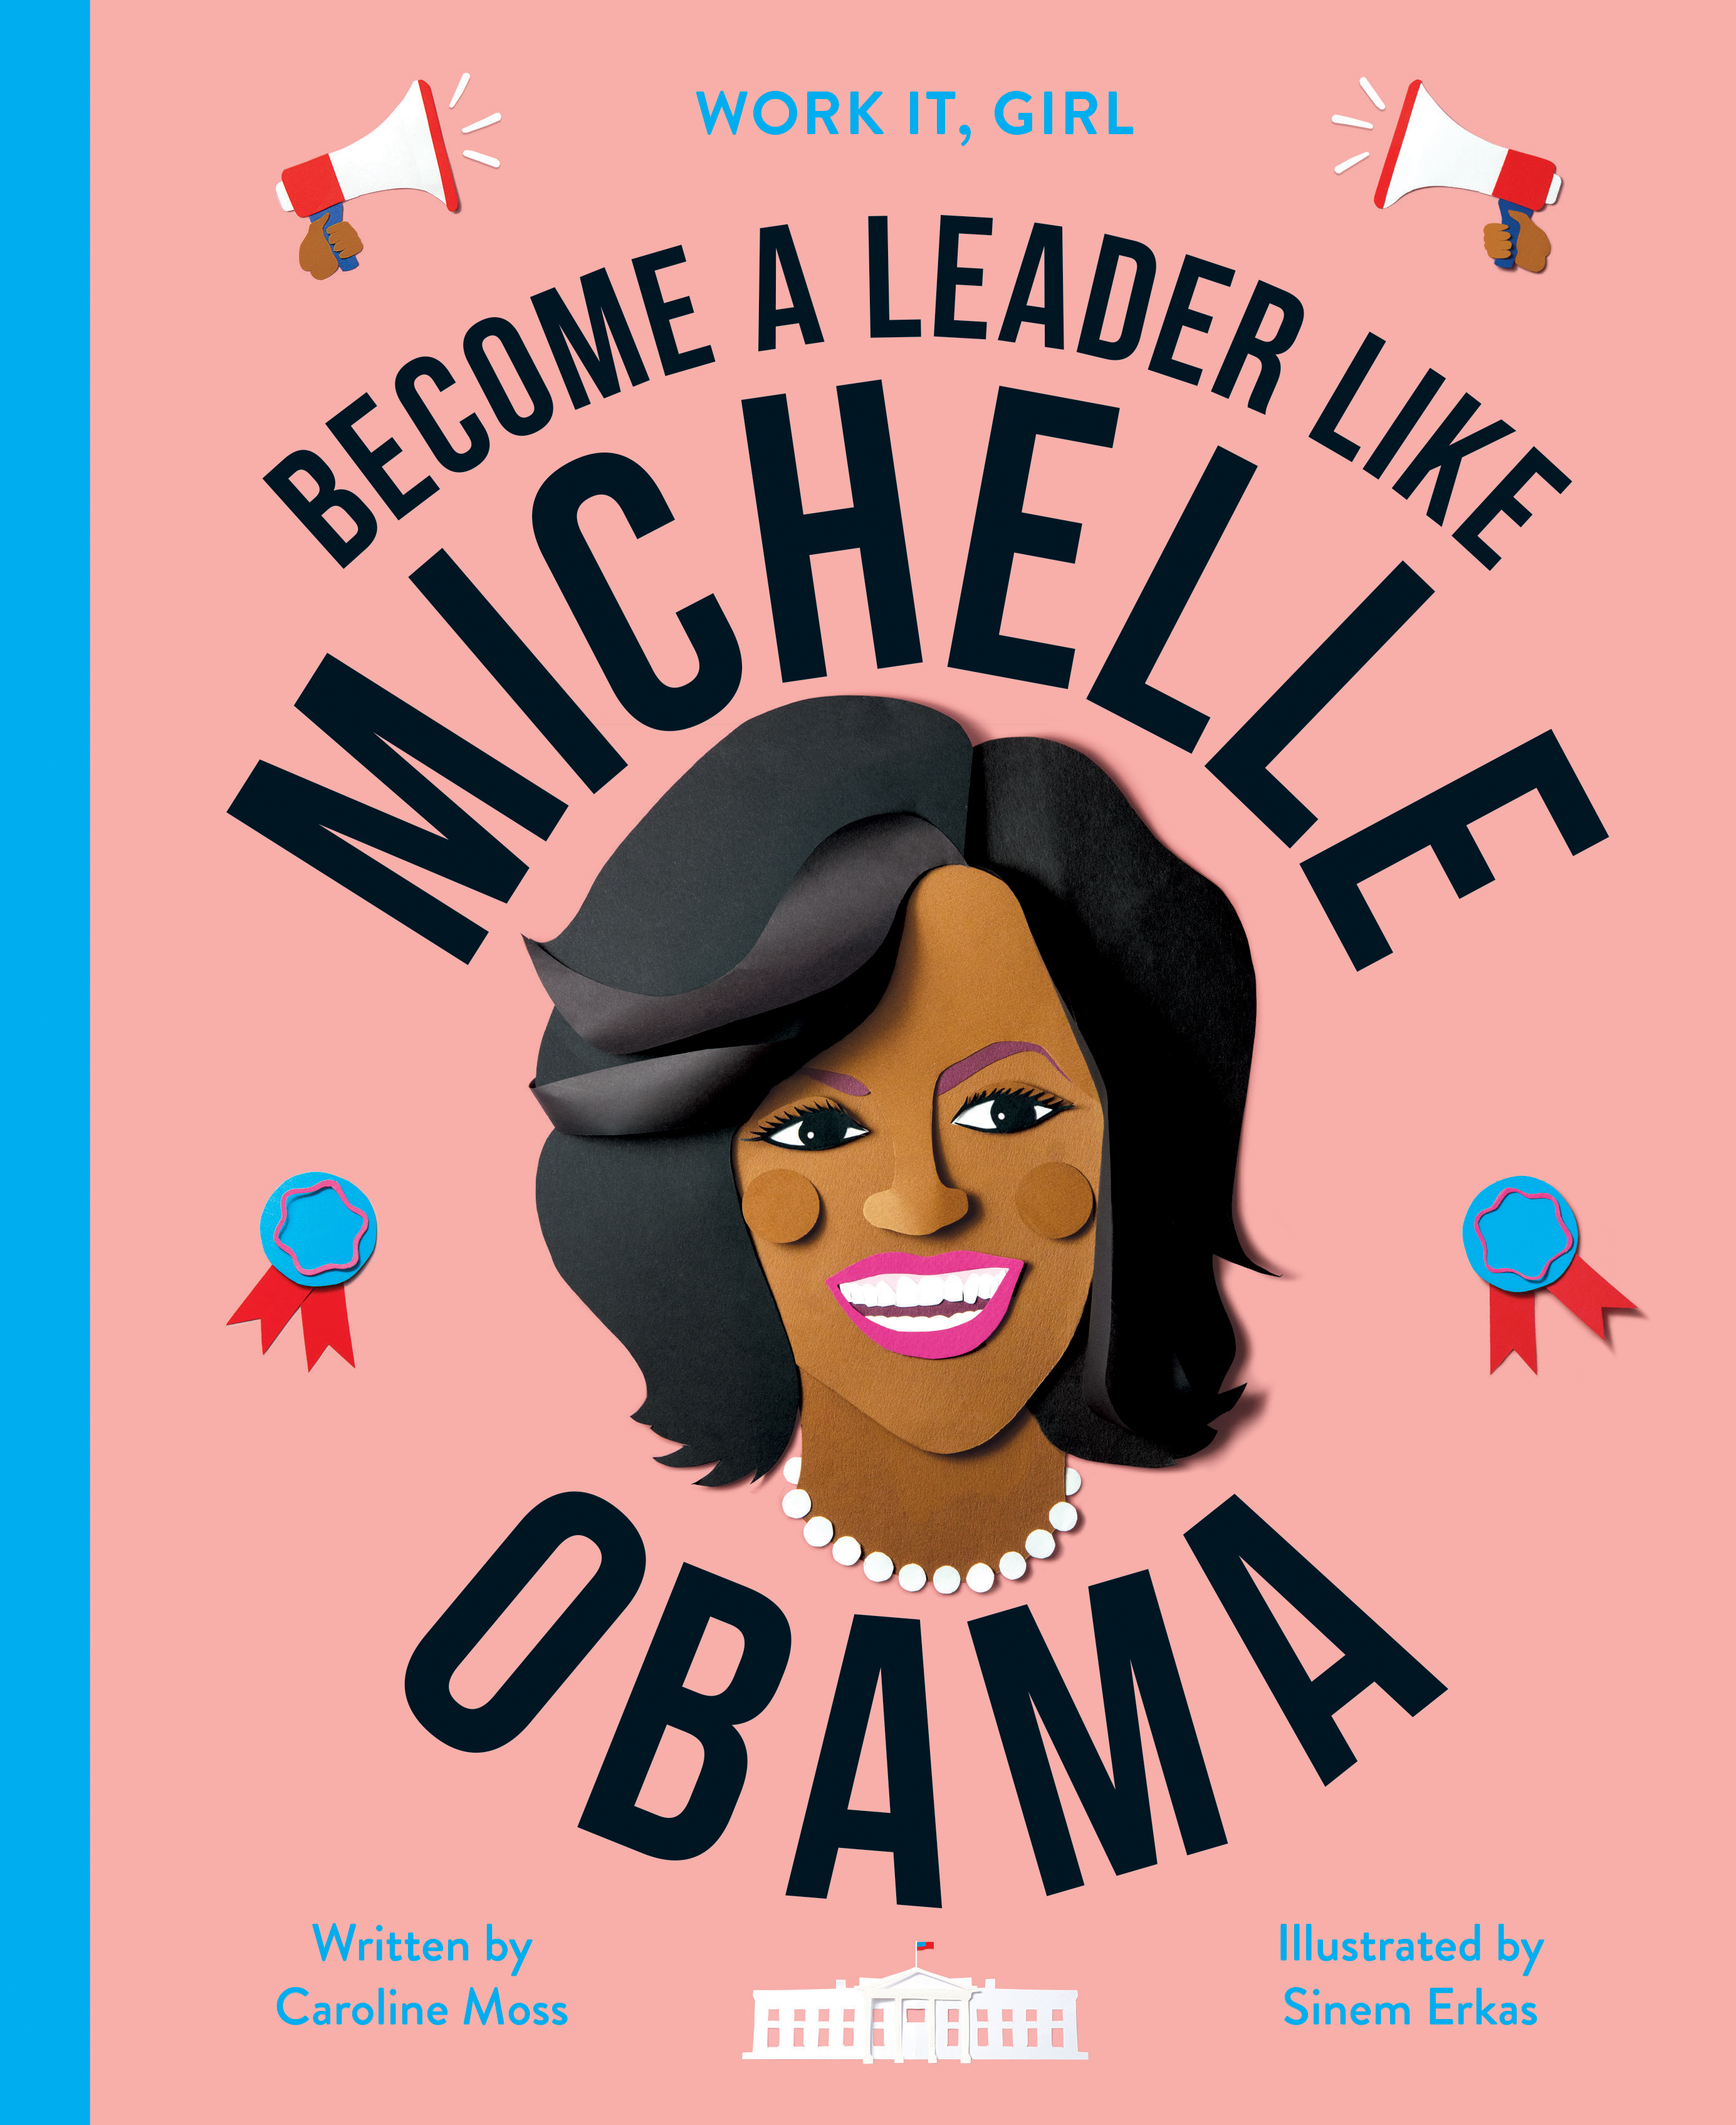 Work It, Girl: Michelle Obama